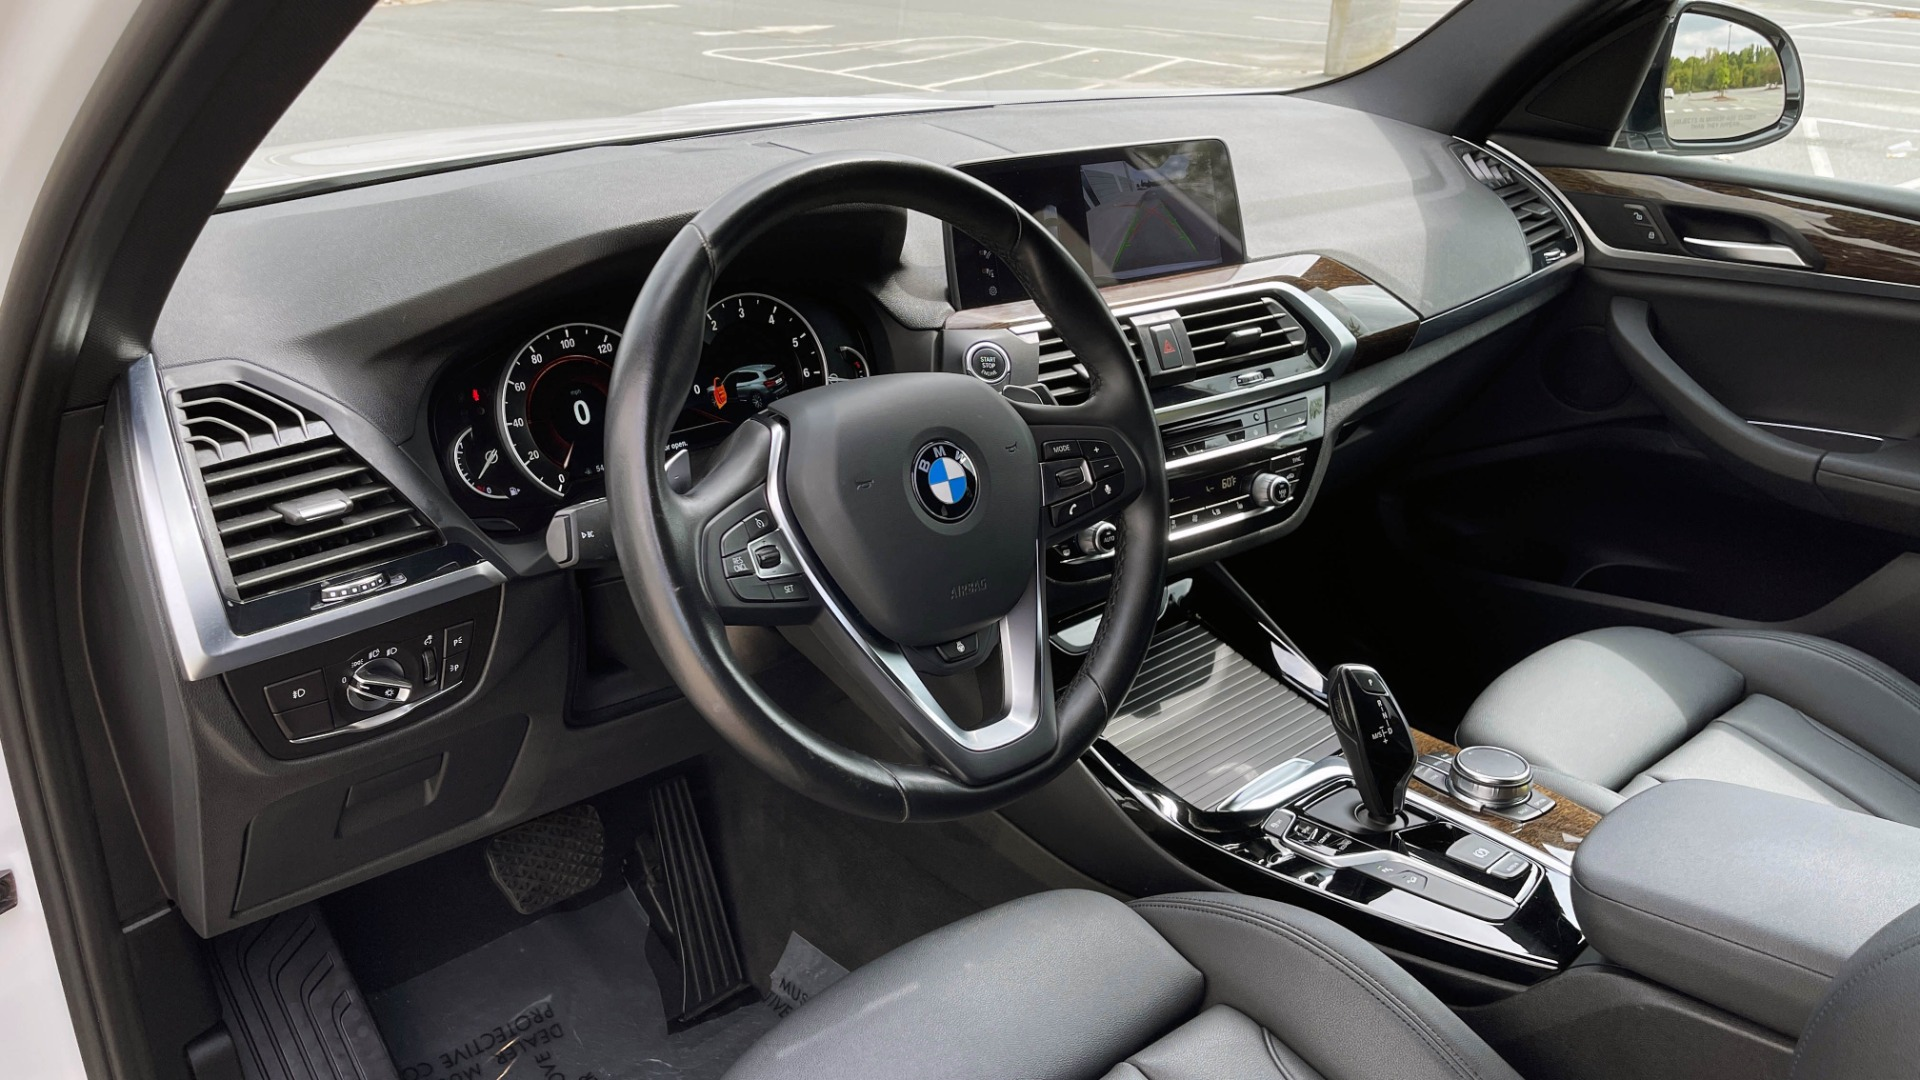 Used 2018 BMW X3 XDRIVE30I / NAV / PANO-ROOF / HTD STS / PARK DIST CNTRL / REARVIEW for sale $38,995 at Formula Imports in Charlotte NC 28227 30